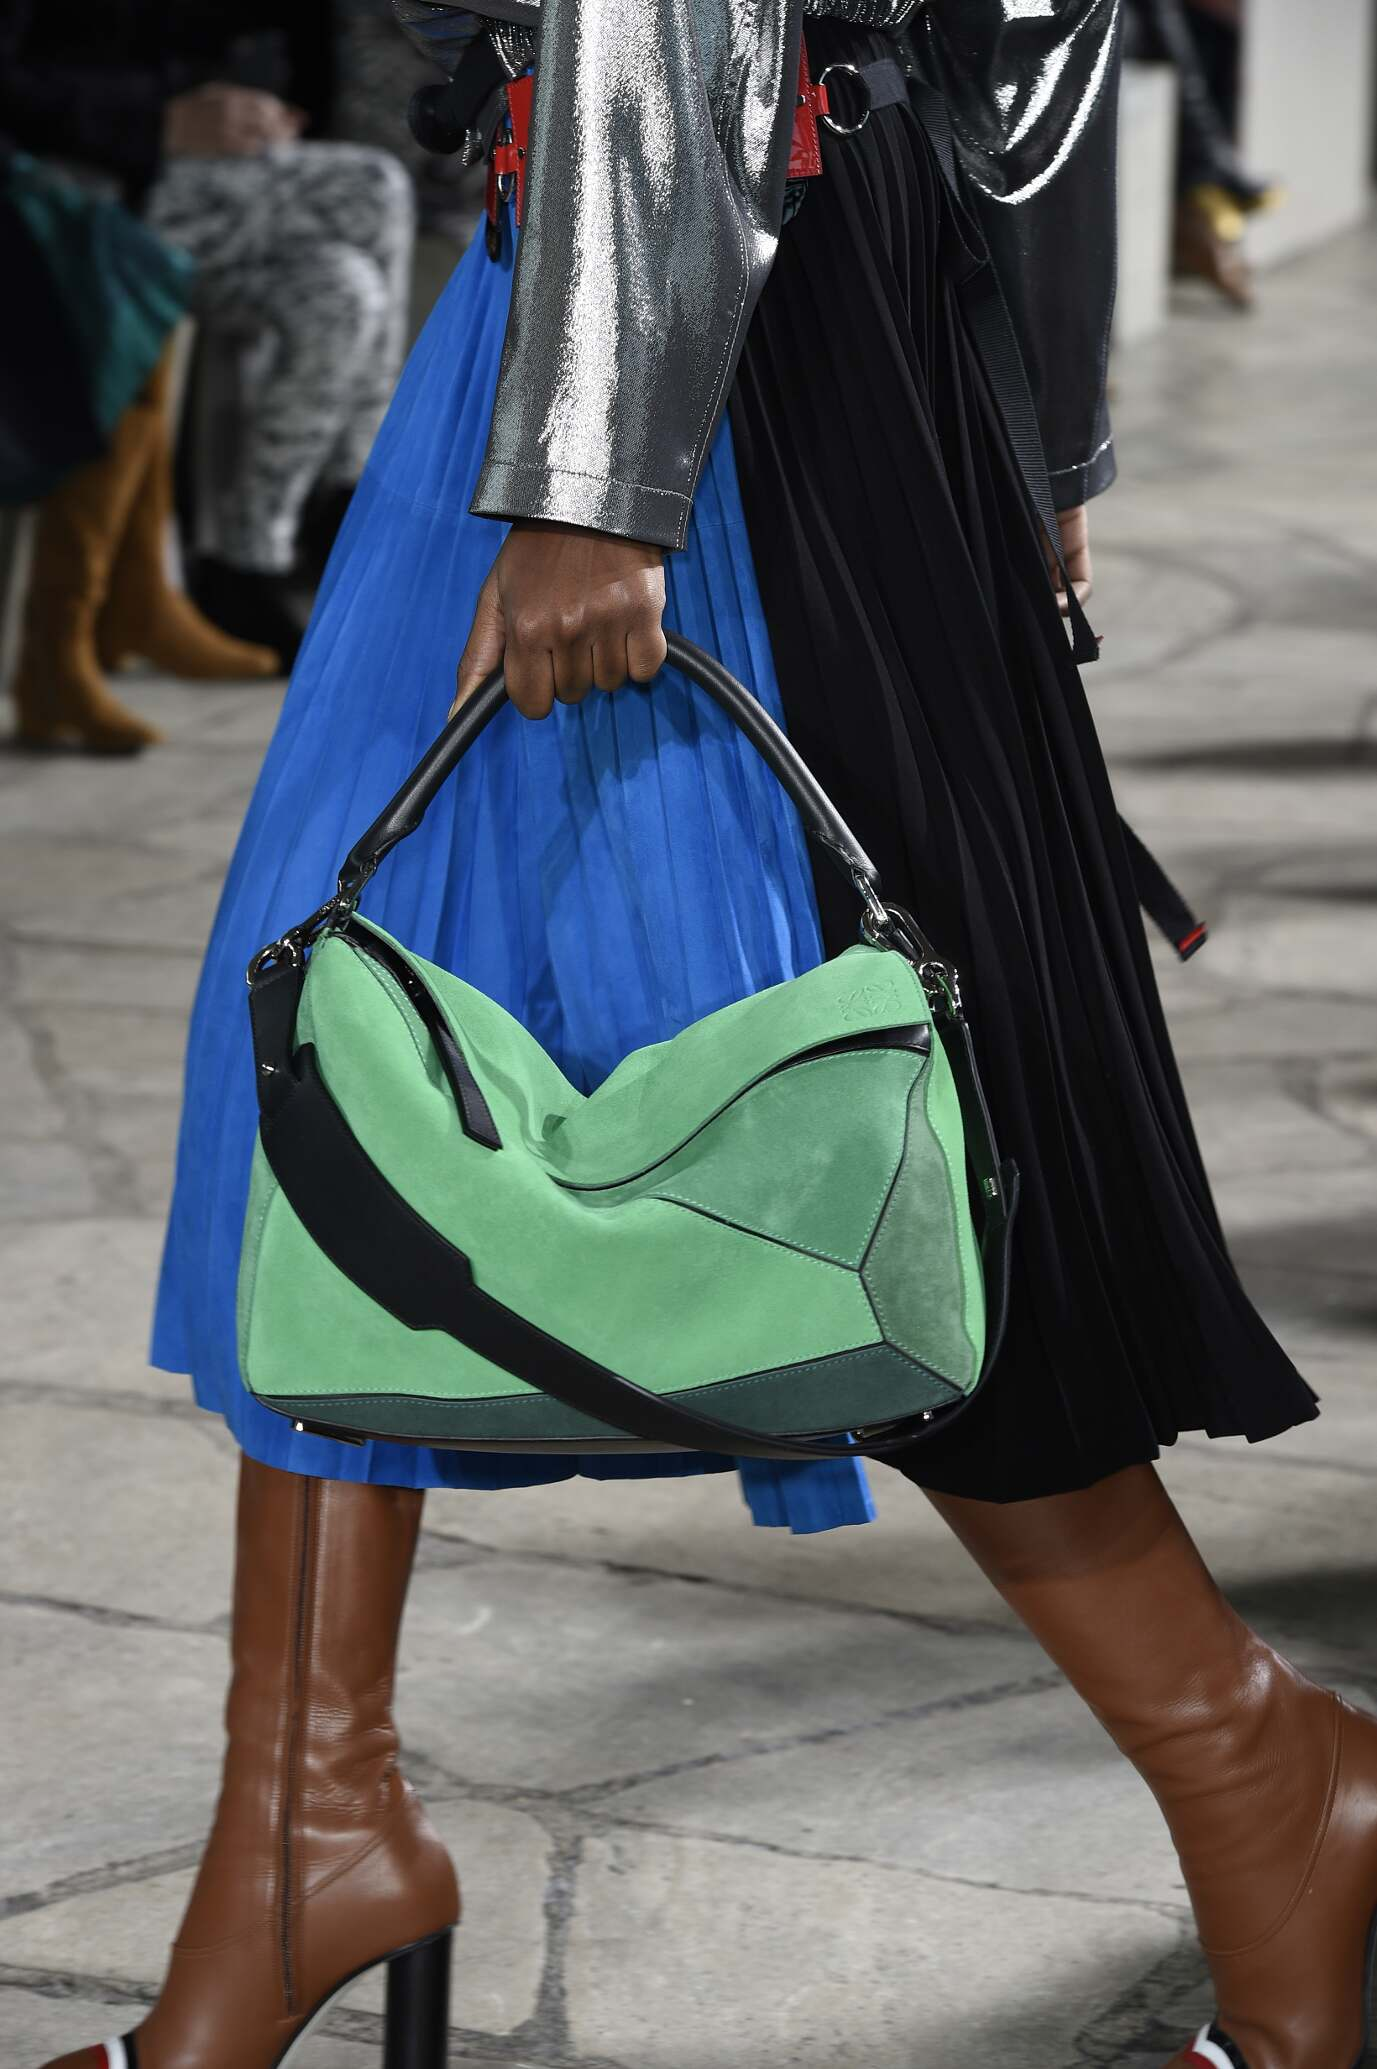 2015 16 Loewe Bag Detail Fall Winter Womenswear Collection Paris Fashion Week Fashion Show